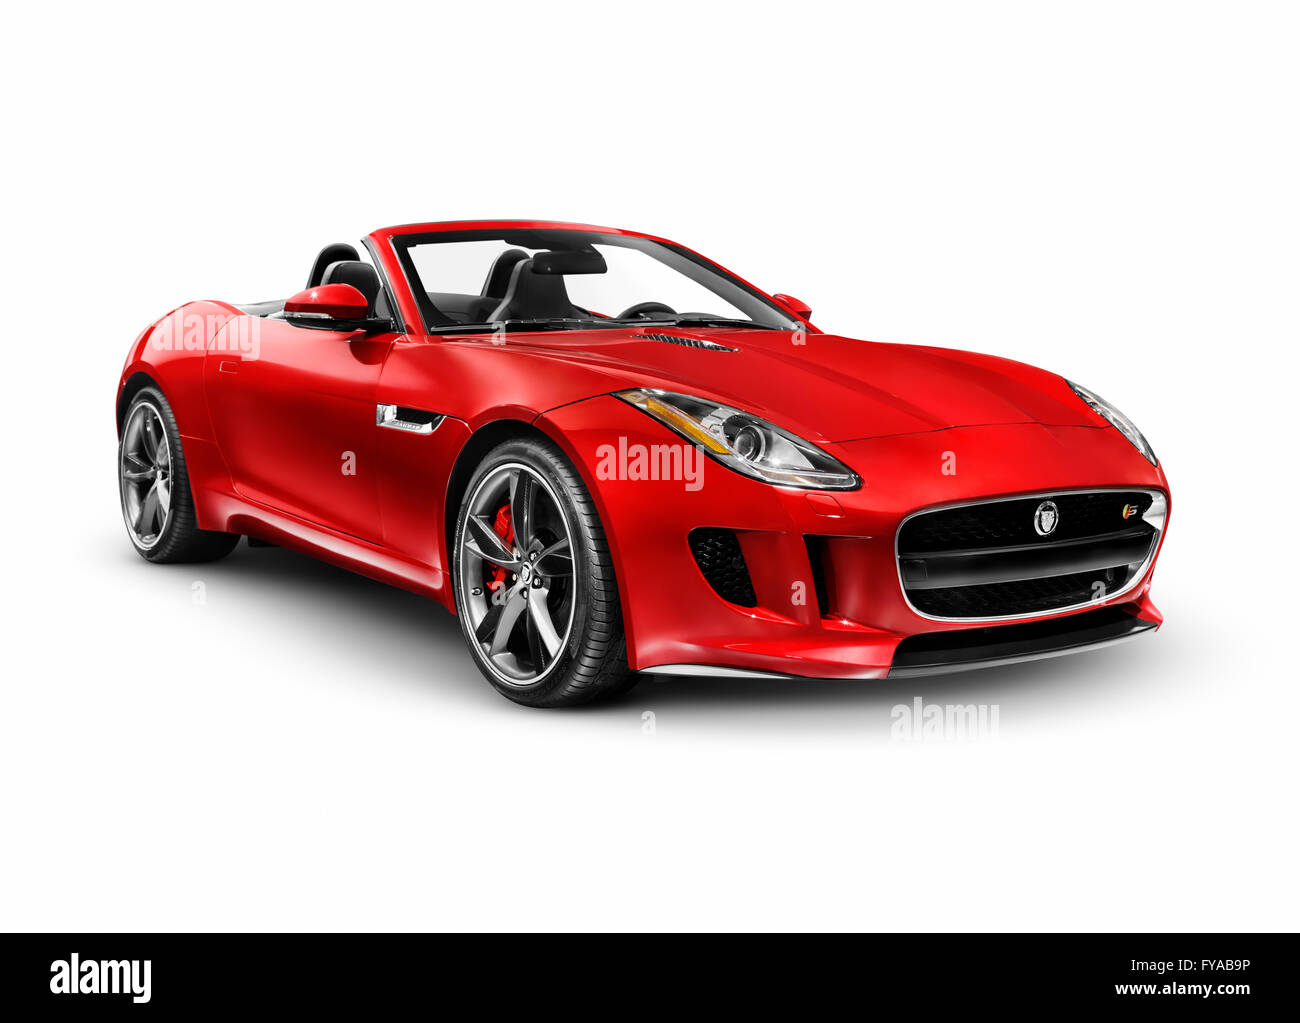 Red 2014 Jaguar F-Type S luxury sports car - Stock Image